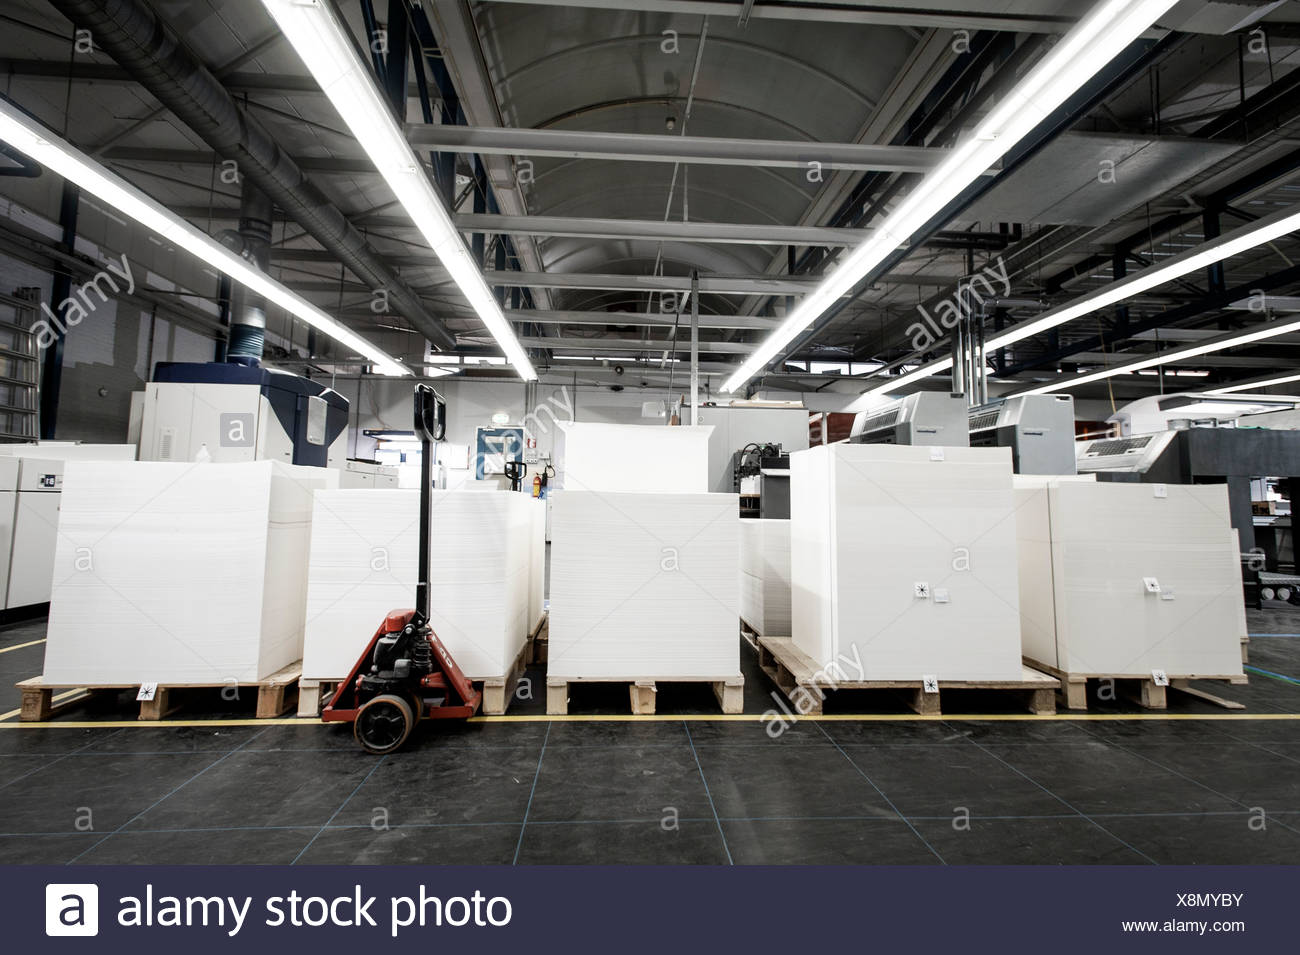 Pallets of paper in printing warehouse - Stock Image